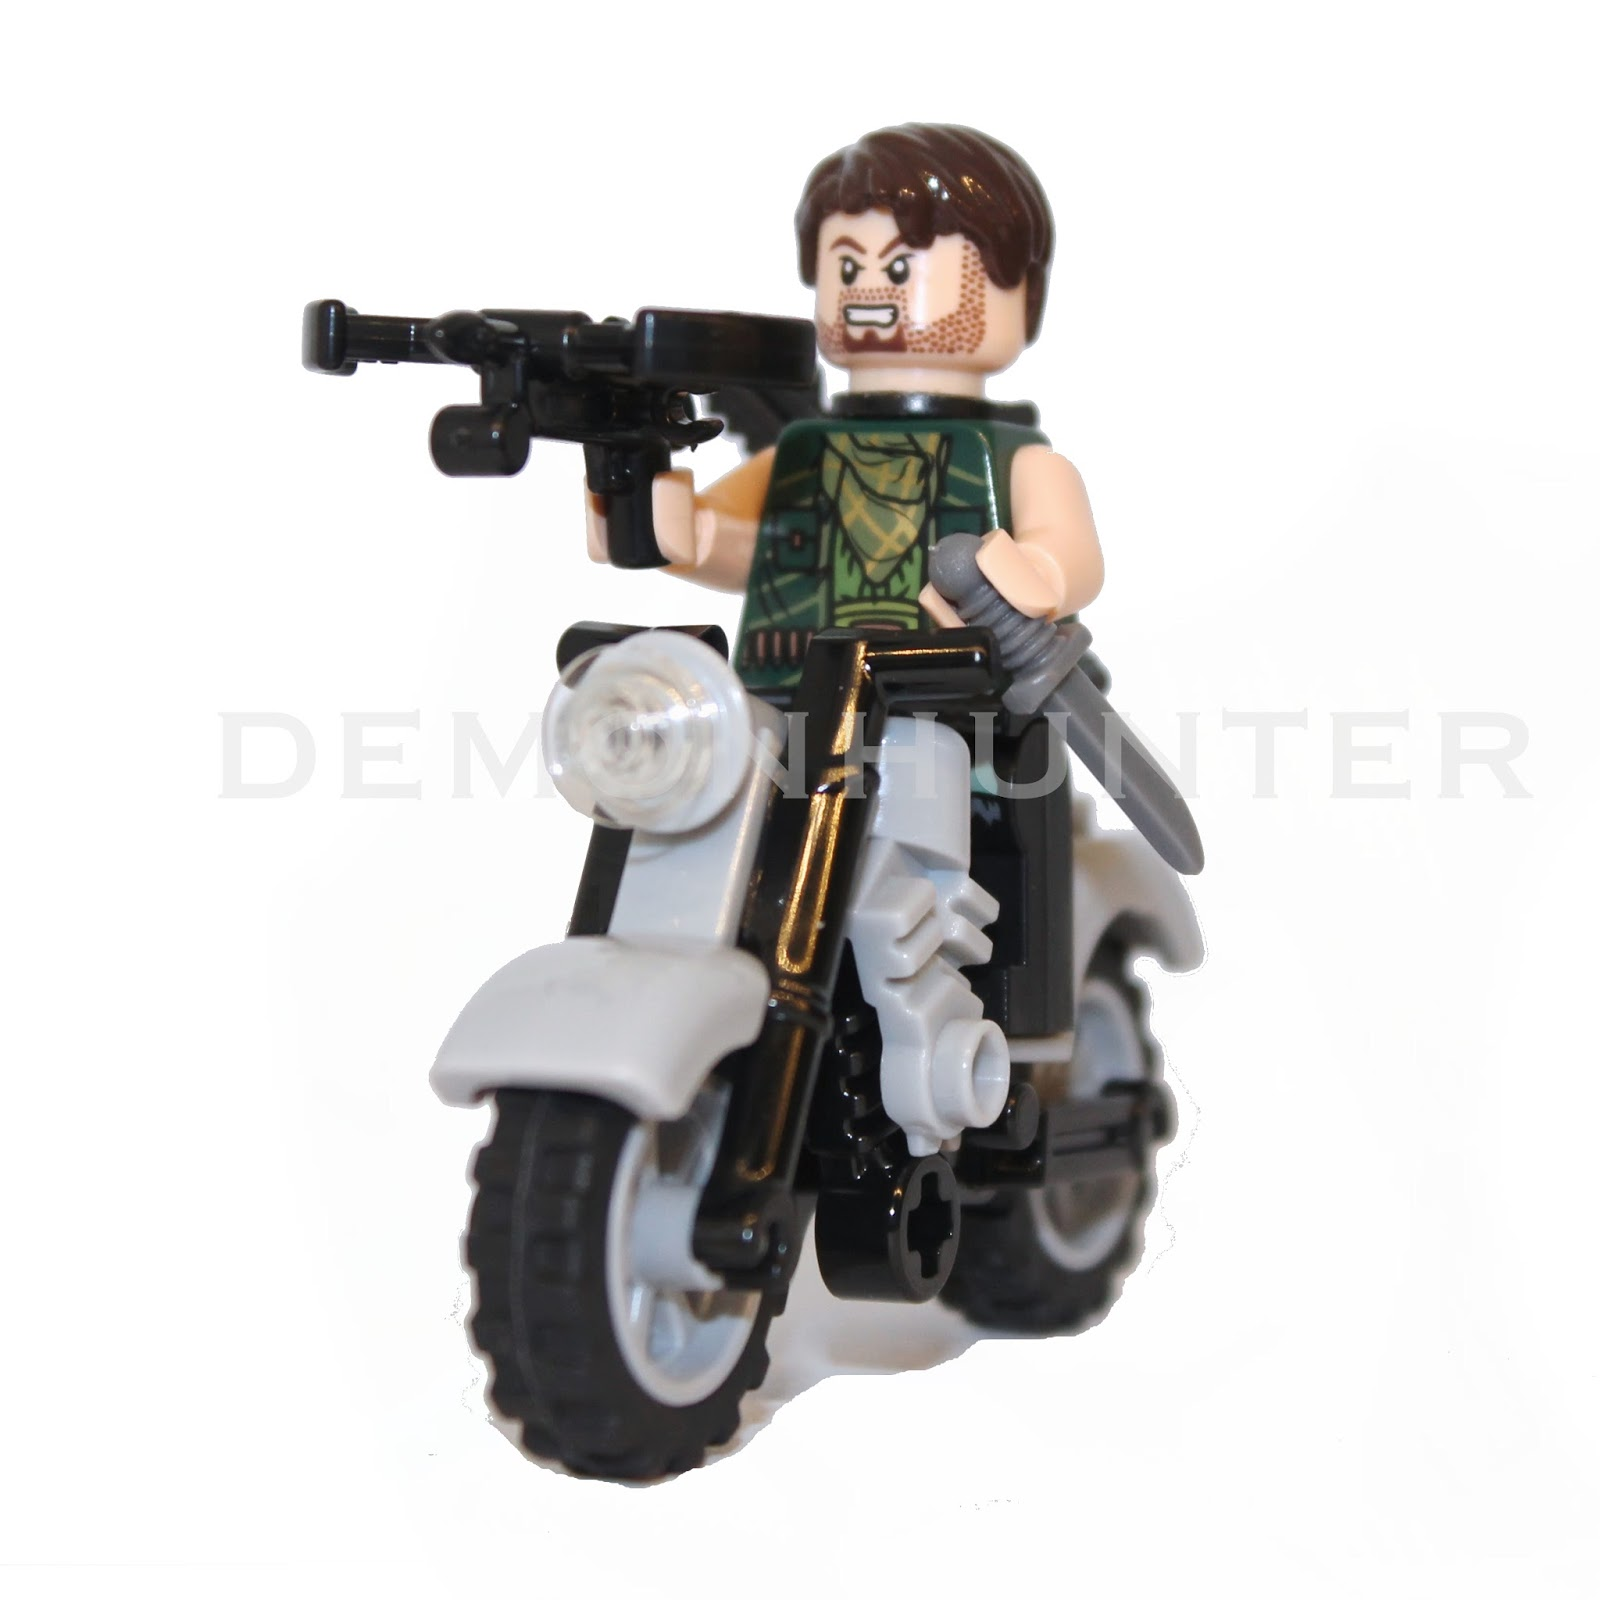 Walking dead lego daryl the walking - Daryl With Motorbike From The Walking Dead Custom Lego Minifigure